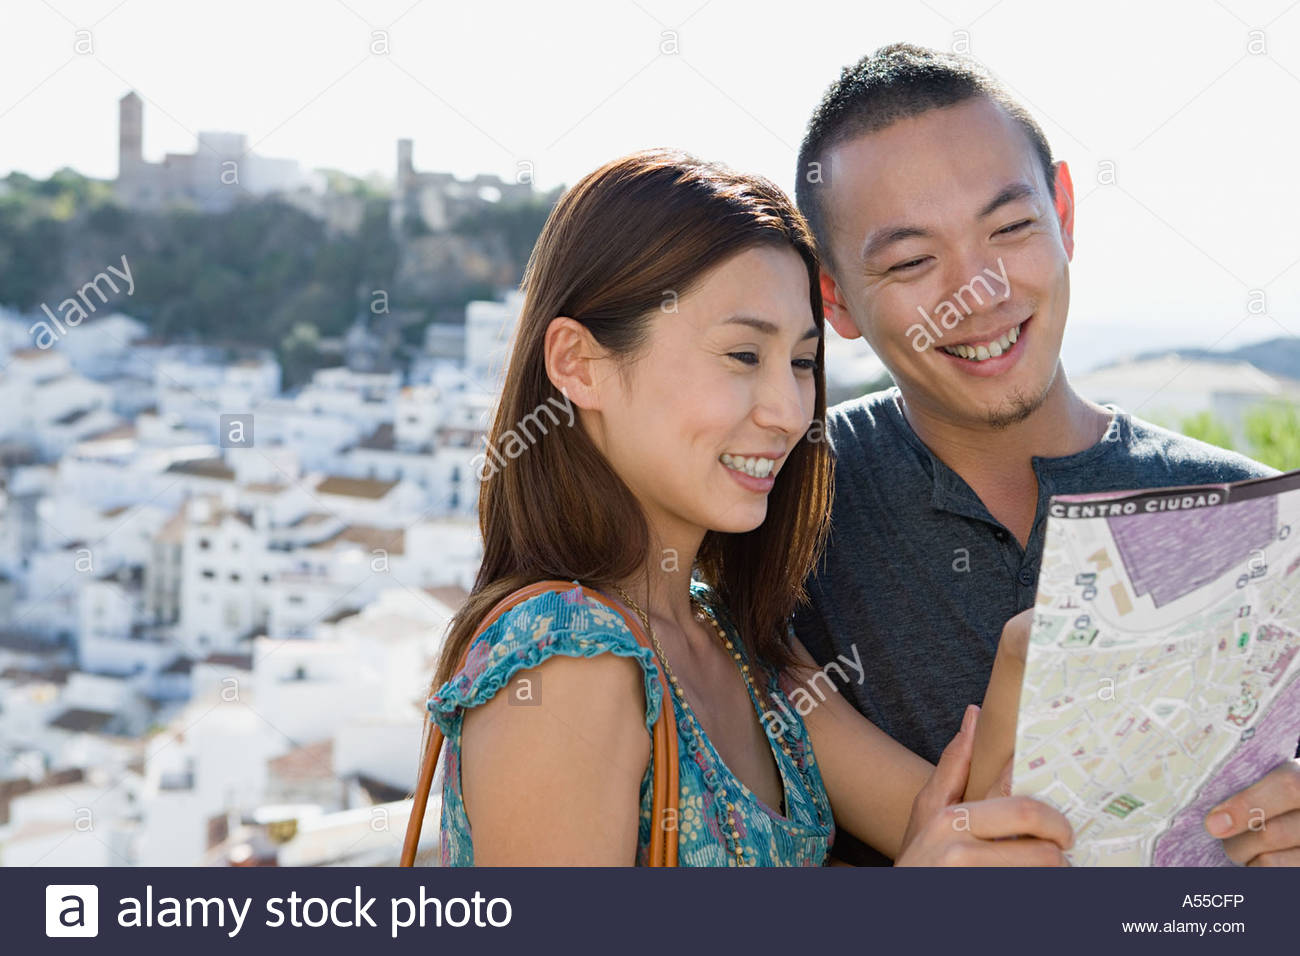 Couple looking at a map - Stock Image